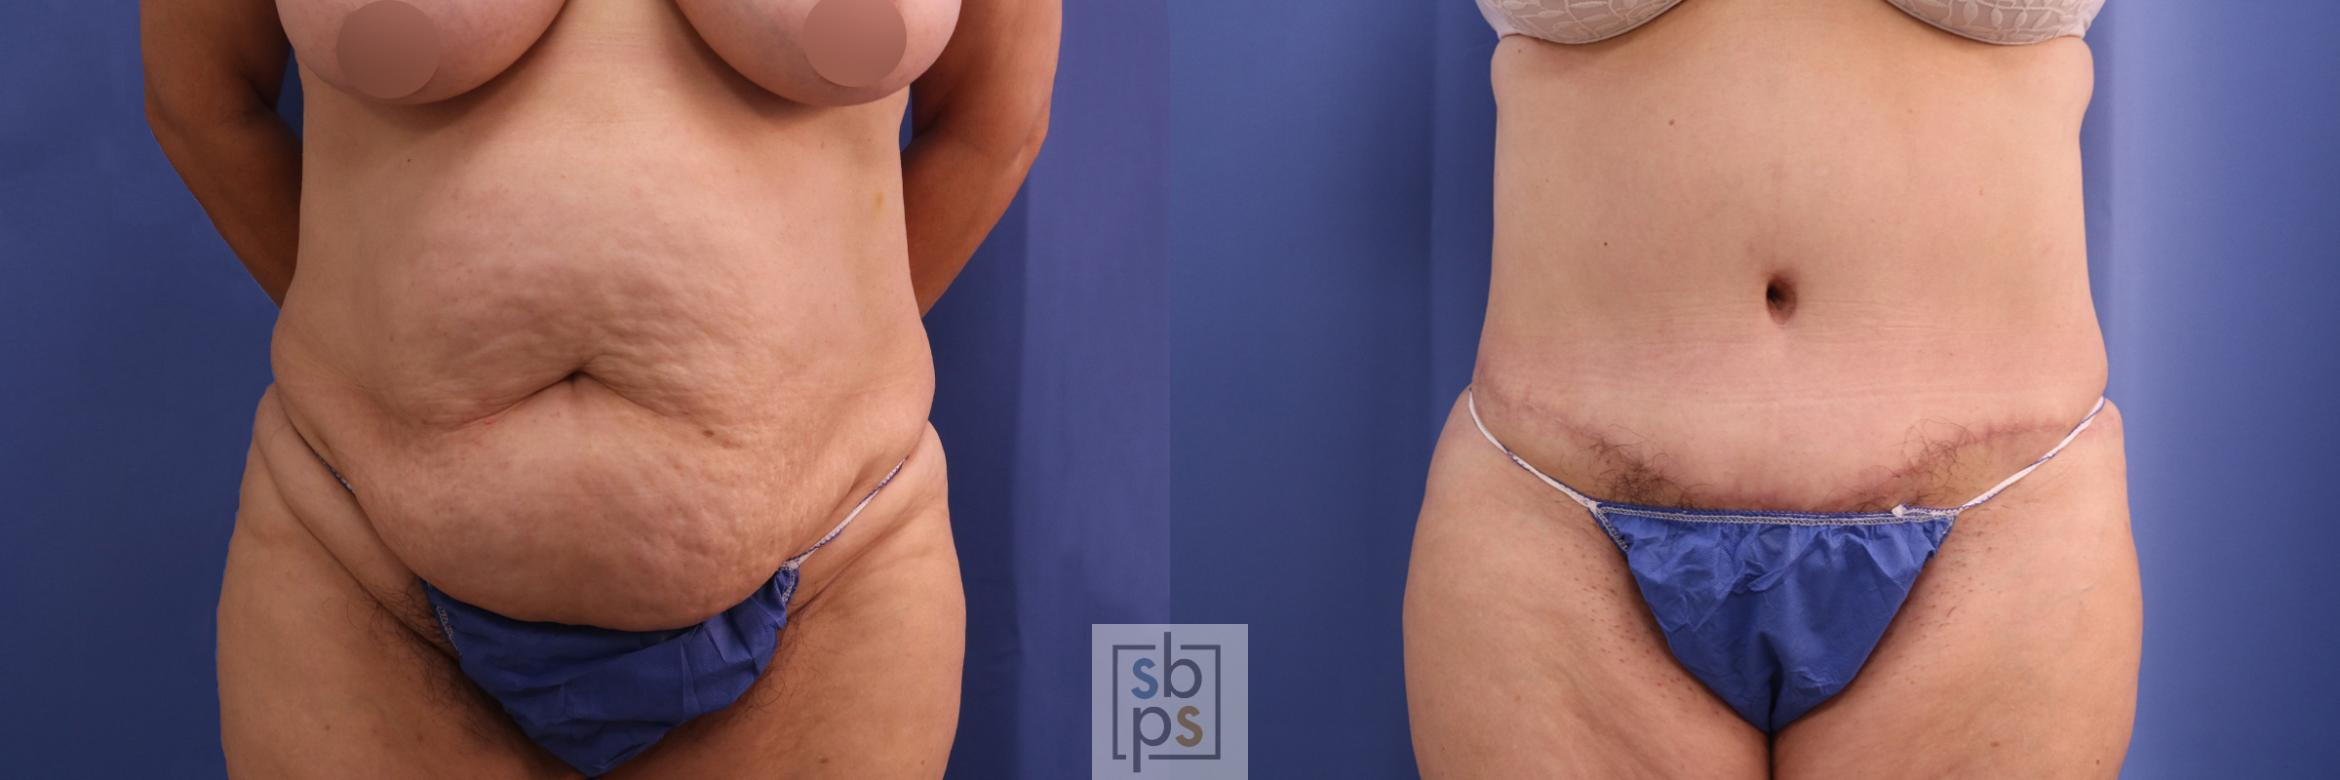 Tummy Tuck Before & After Photo | Torrance, CA | Plastic Surgery Source